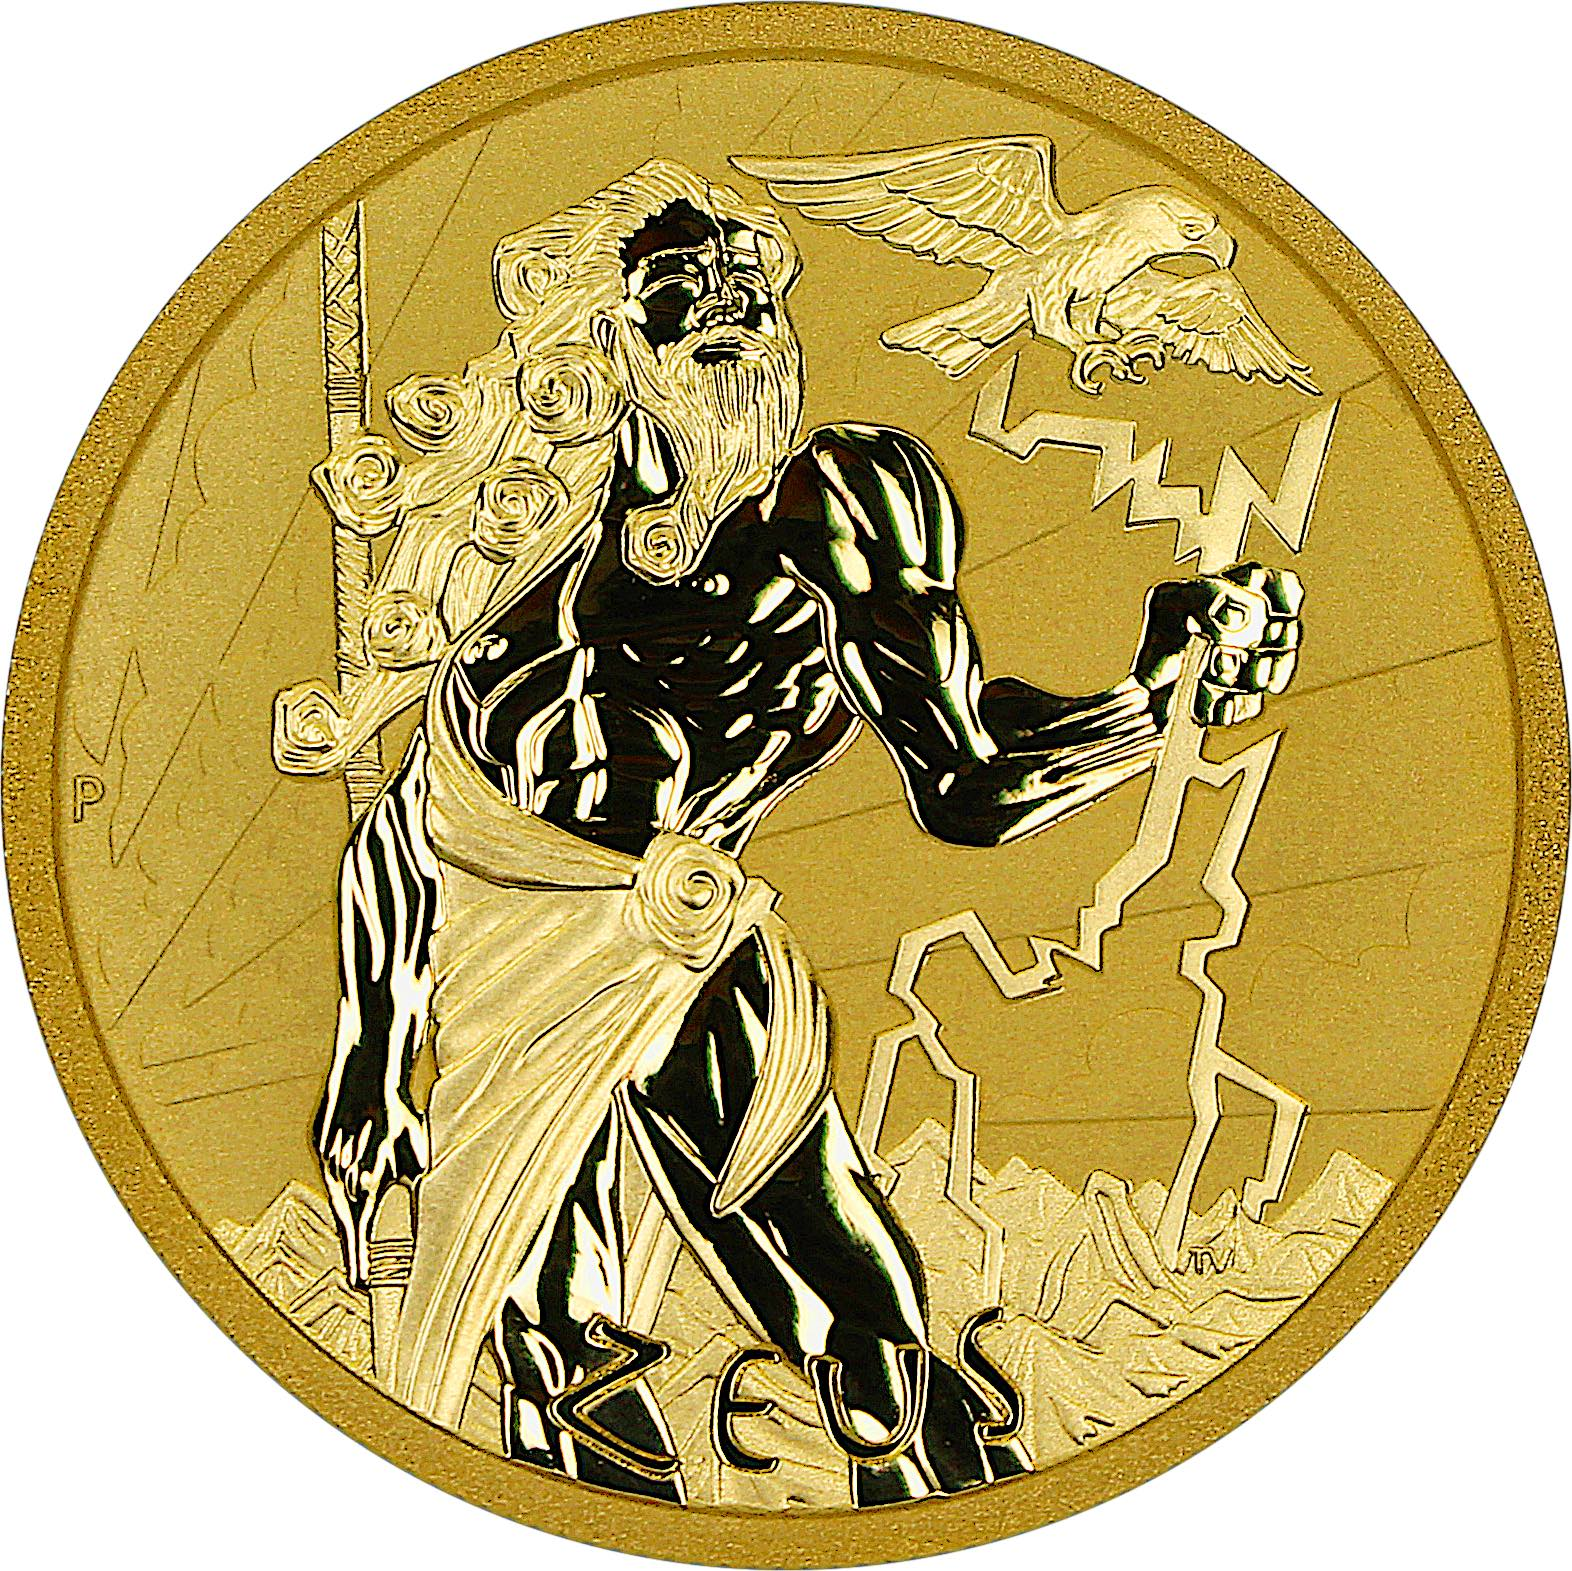 2021 Gods of Olympus - Zeus 1oz Gold & 5 oz Silver Antiqued Coins (Certificate)